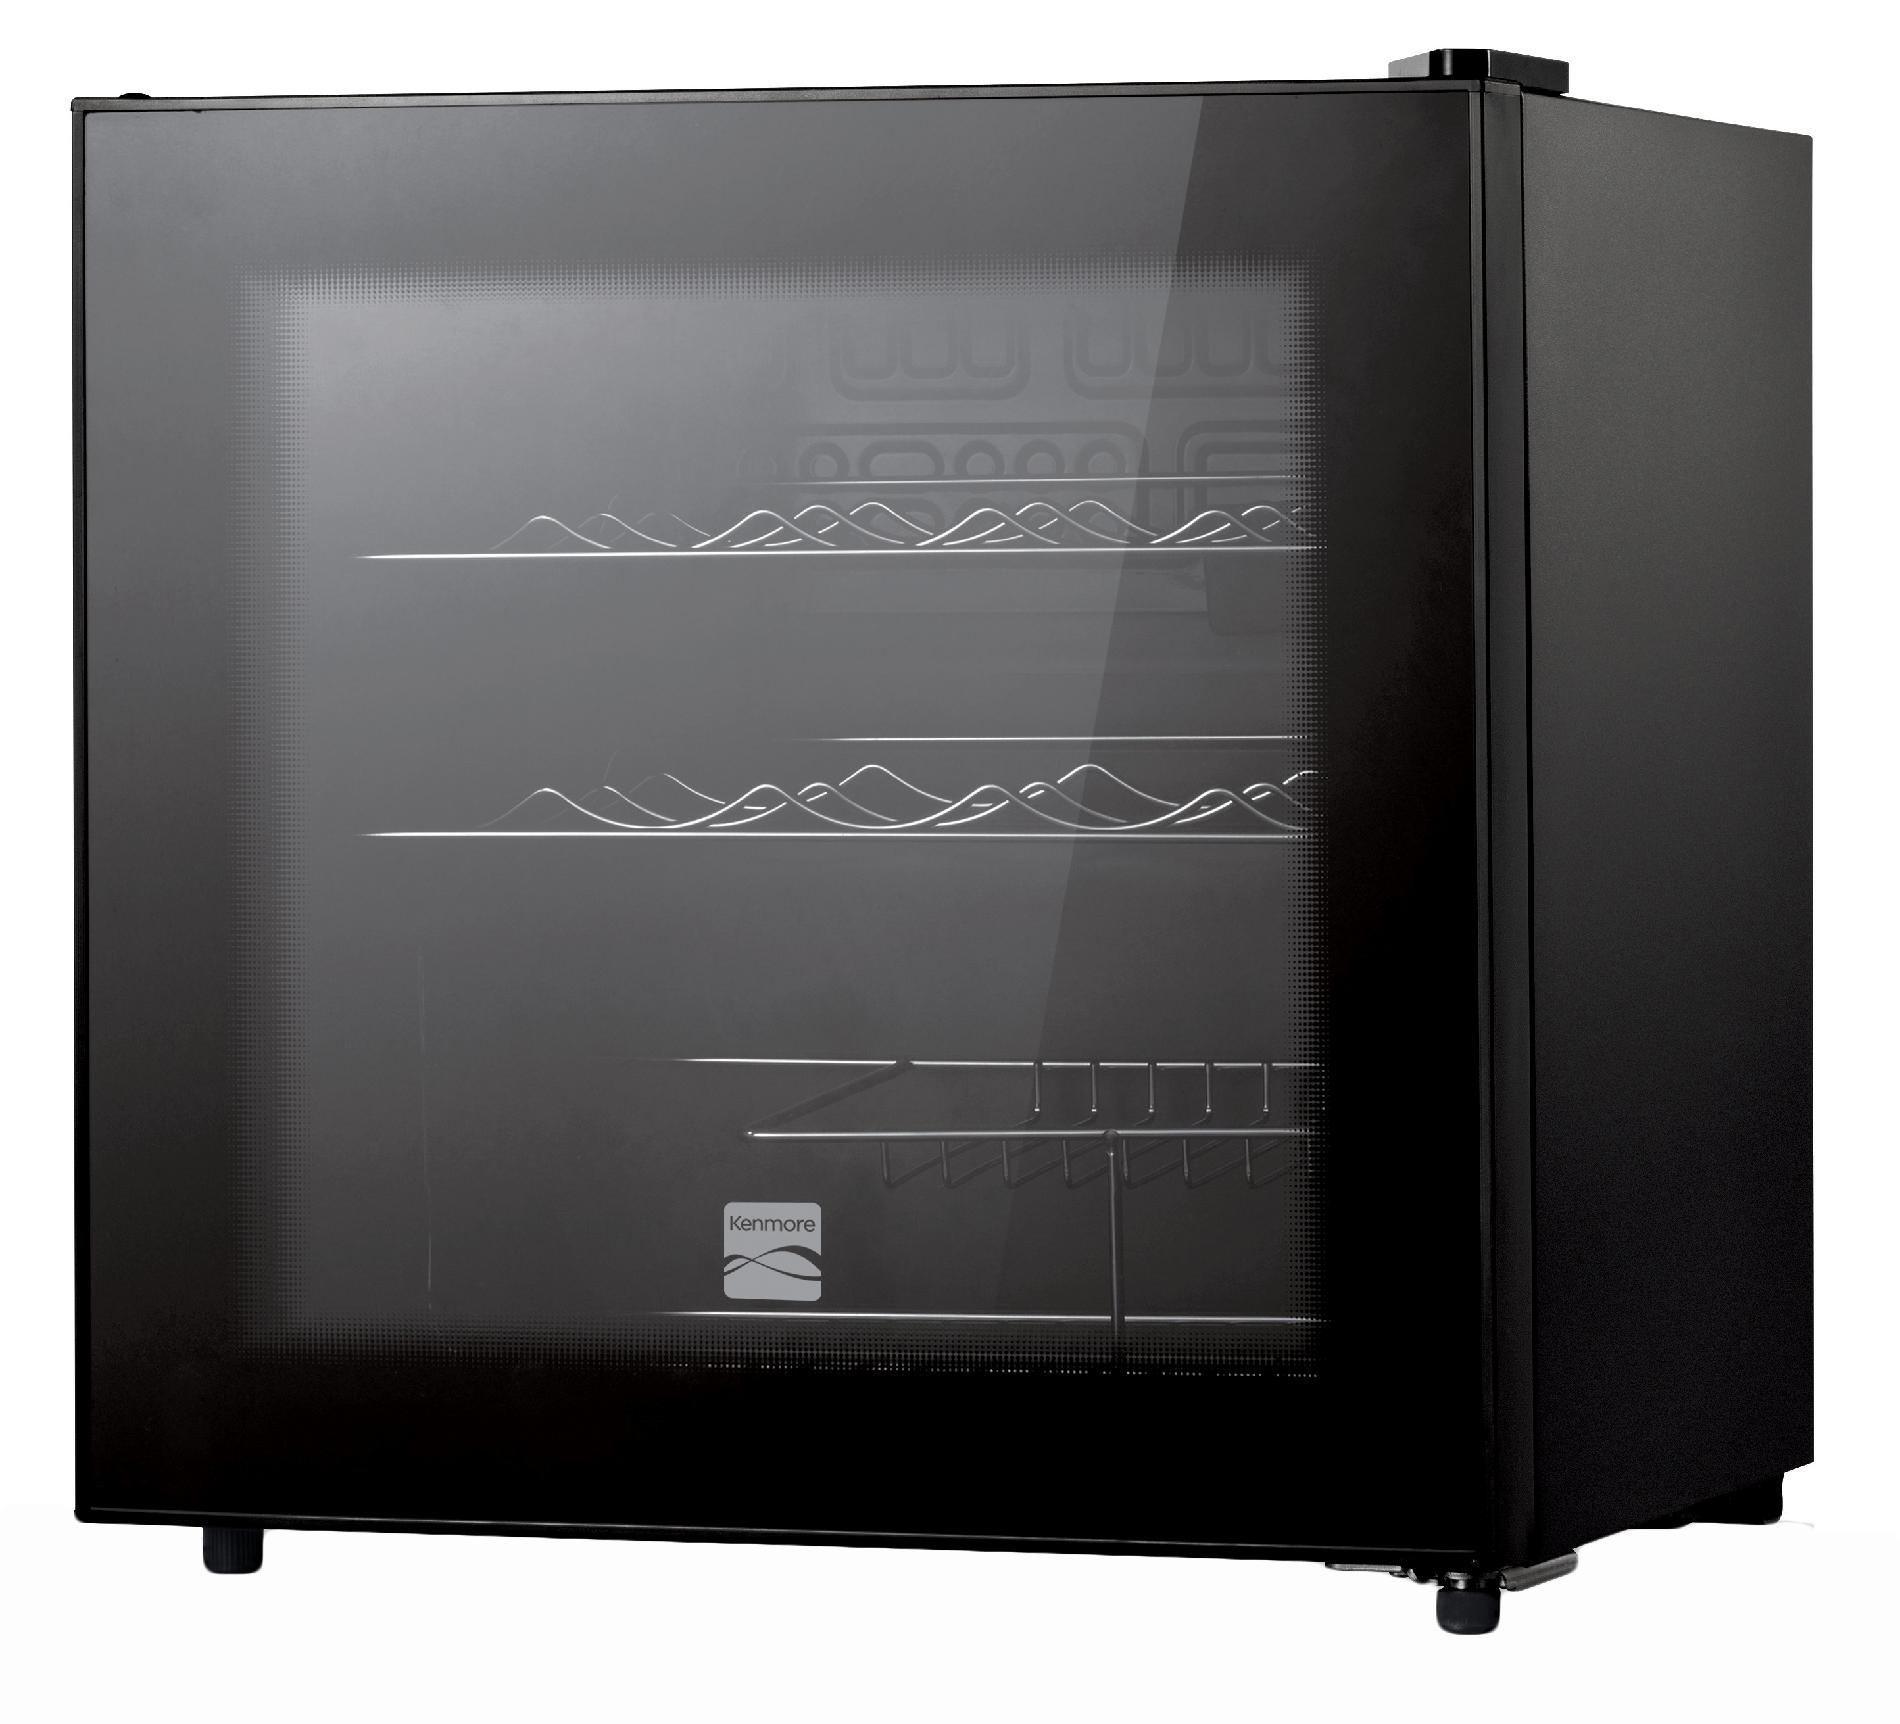 Kenmore 16-Bottle Wine Chiller - Black